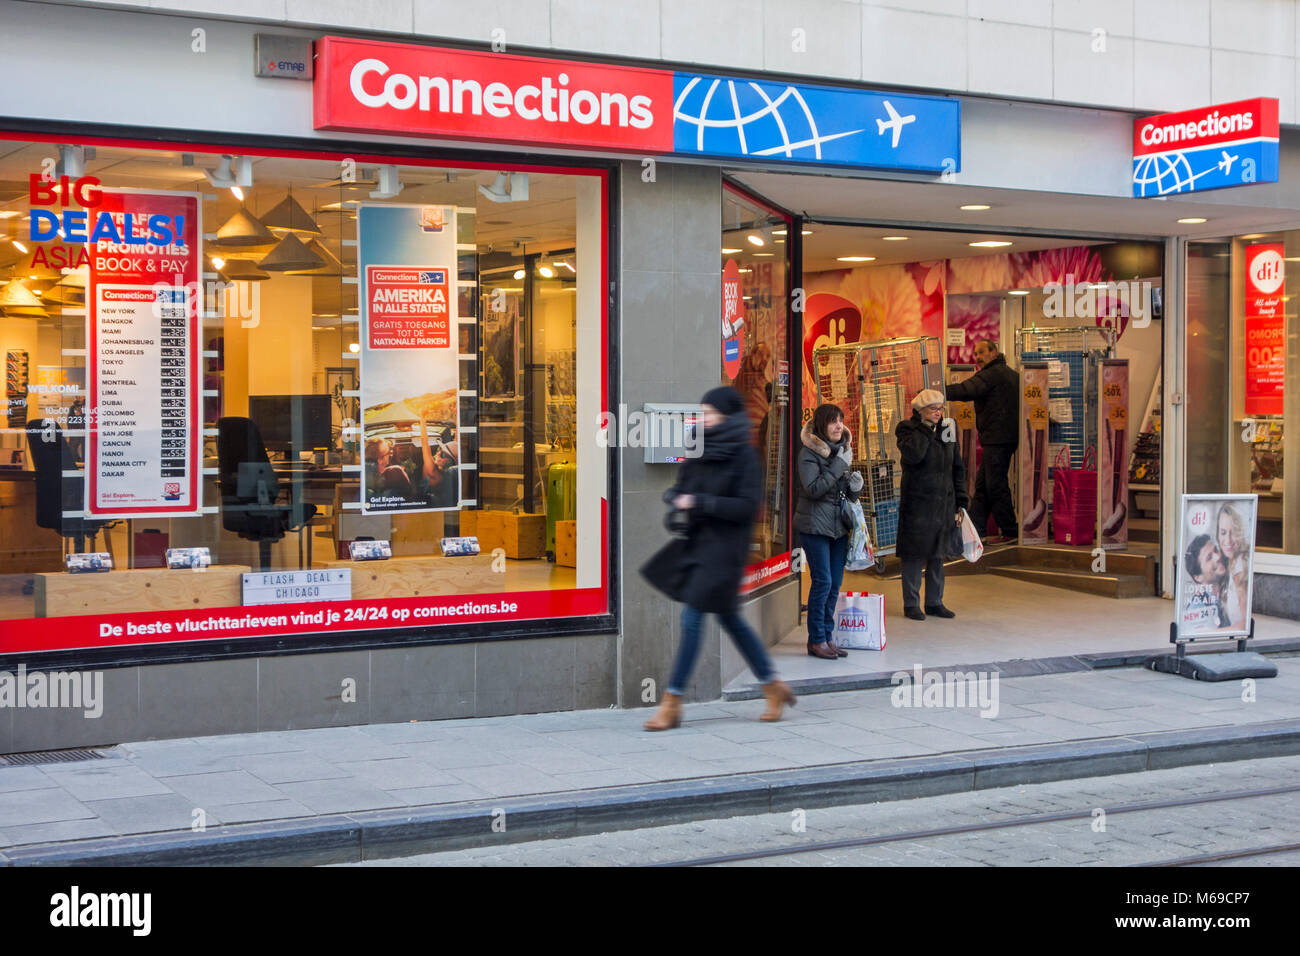 Connections travel shop / travel agency in Belgium - Stock Image